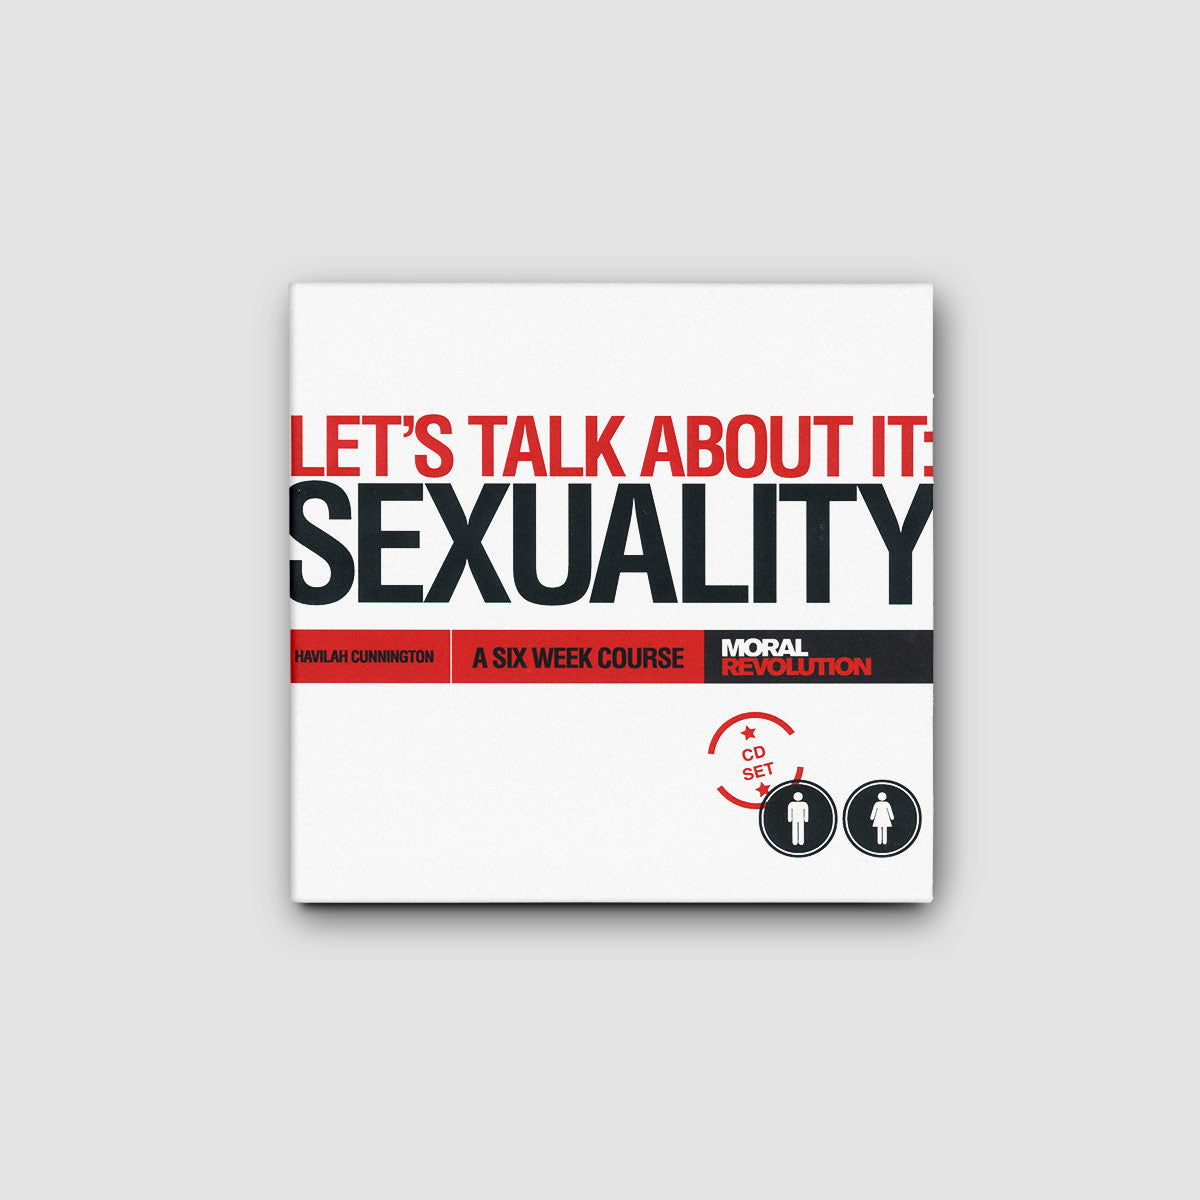 Let's Talk About It: Sexuality - 6 Week Course